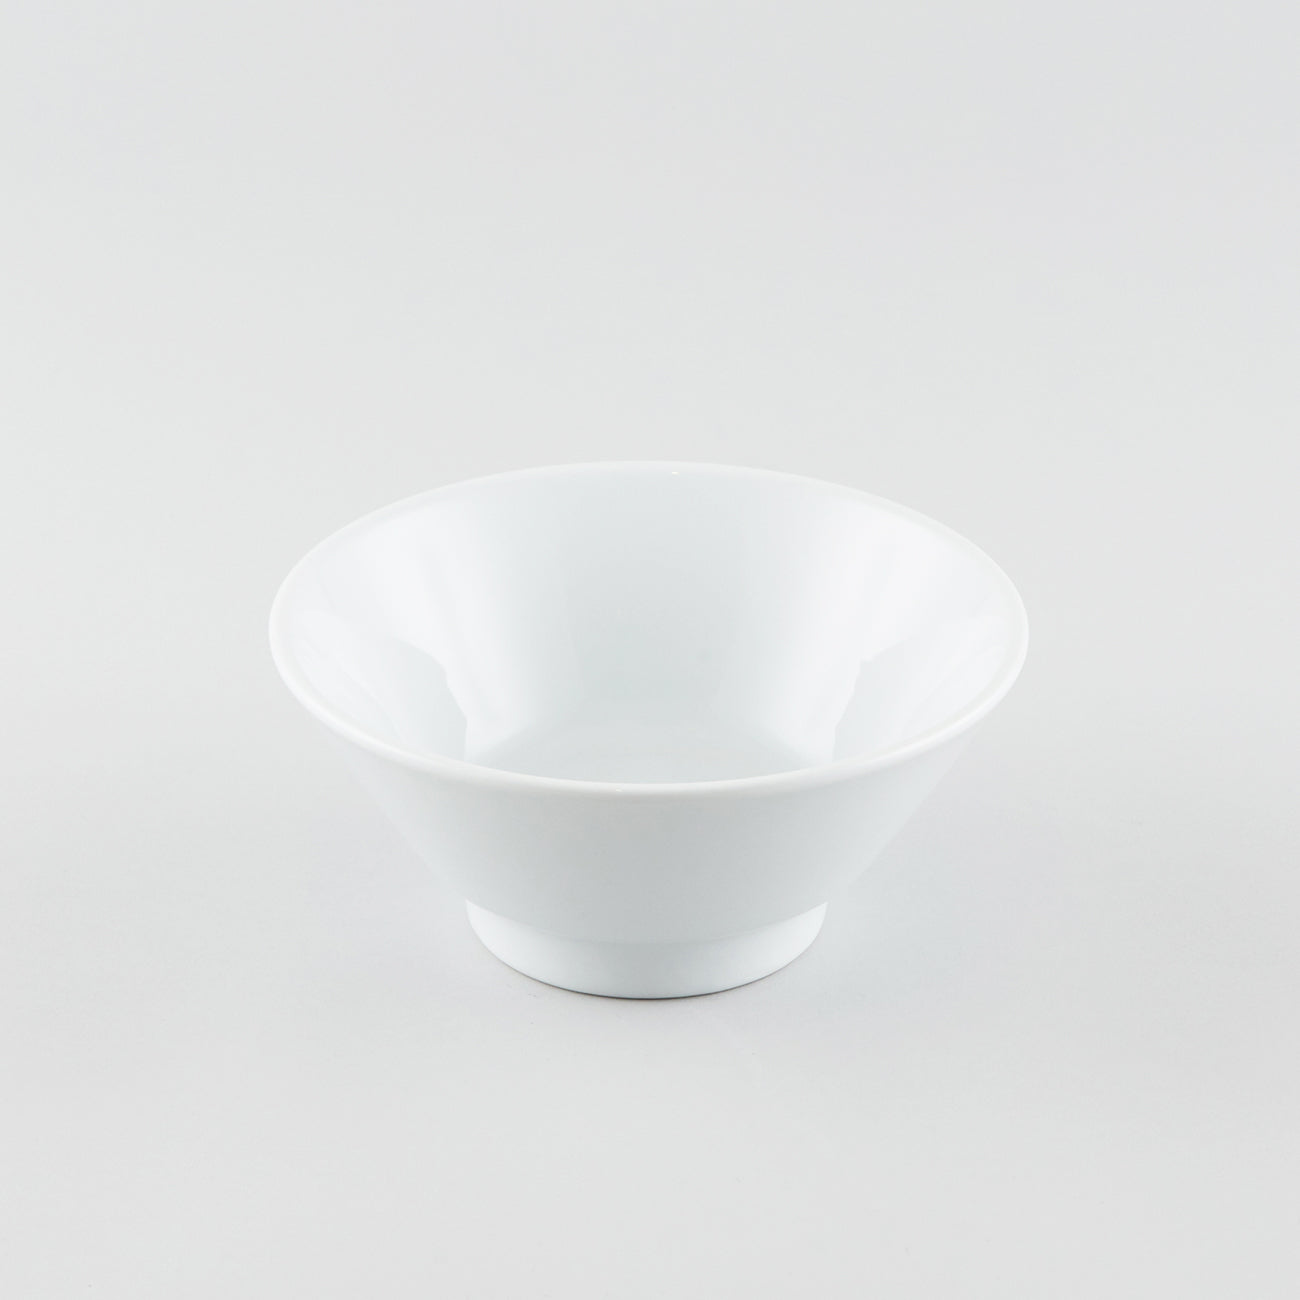 V-Shape Ramen Bowl - (White) 46 fl oz.